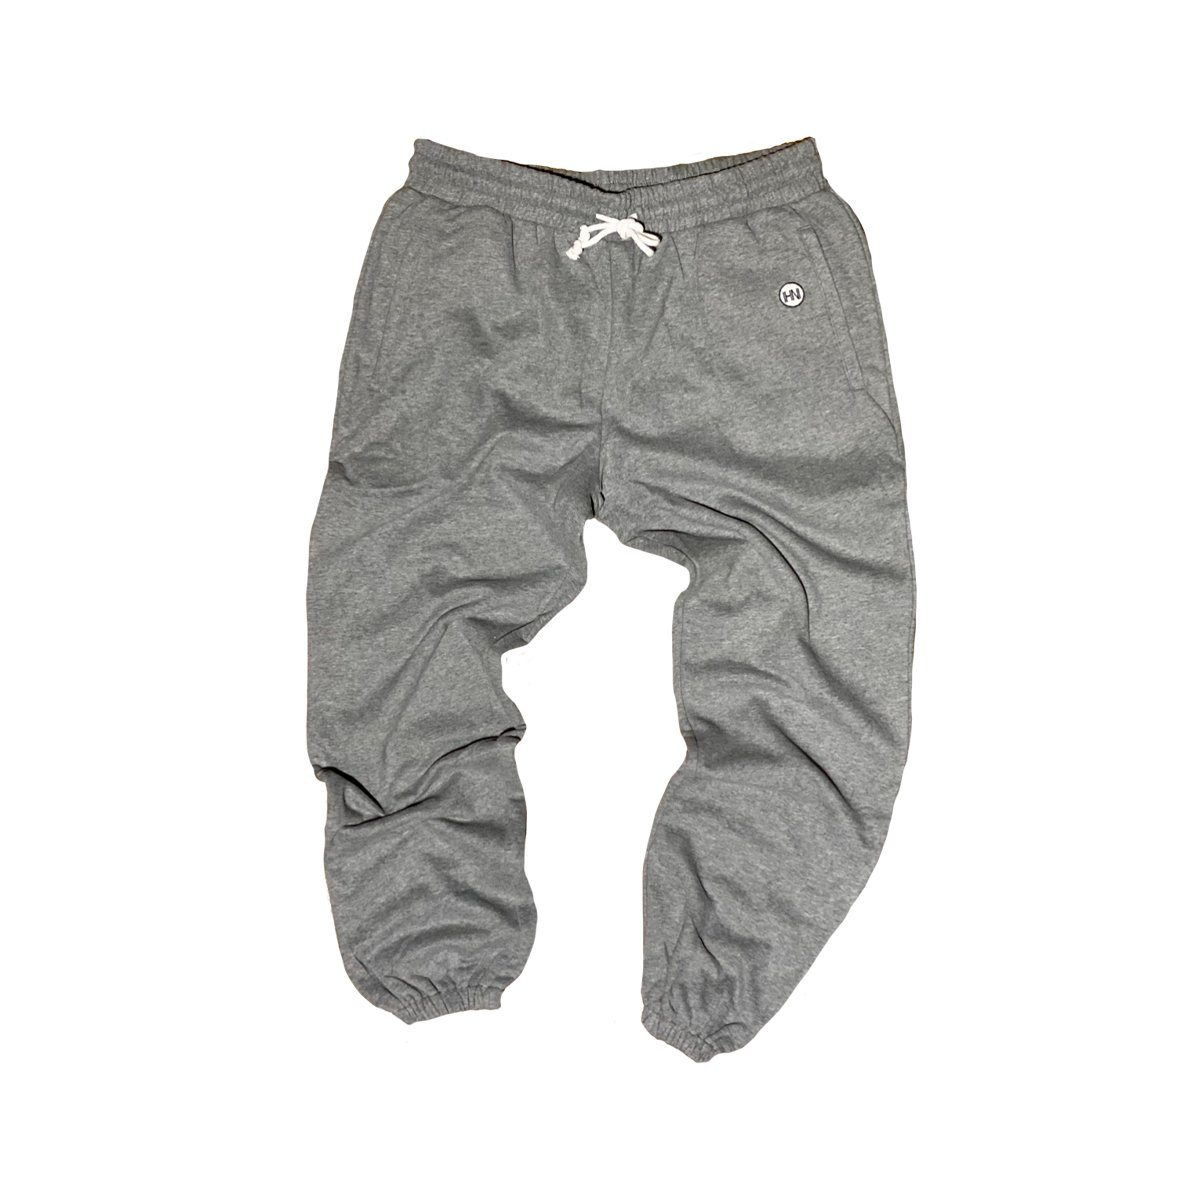 HYBRID NATION BASICS SWEATPANTS (GREY)